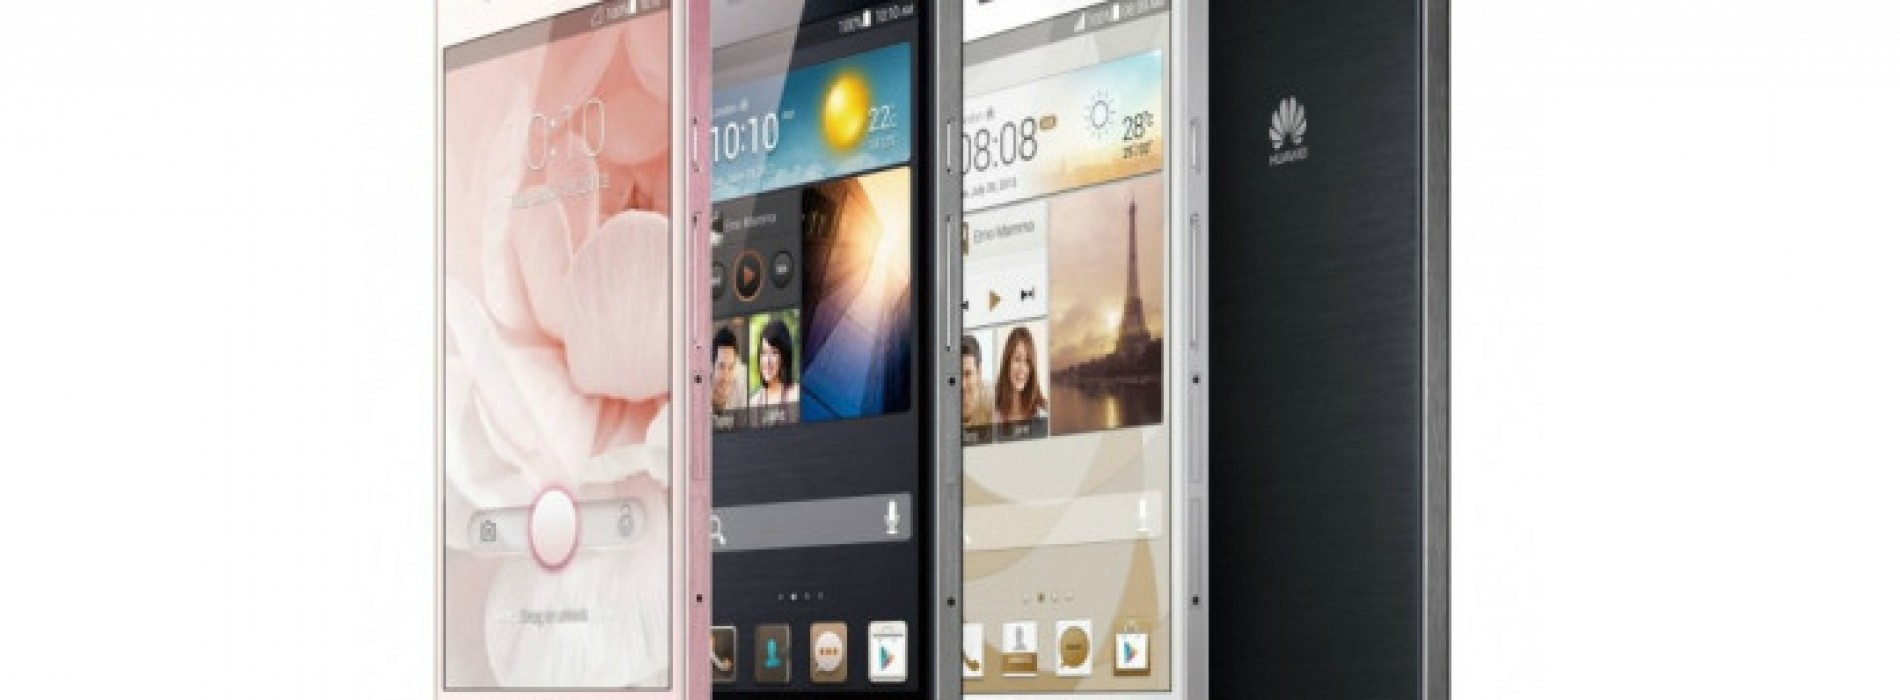 Huawei debuts world's thinnest smartphone, Ascend P6